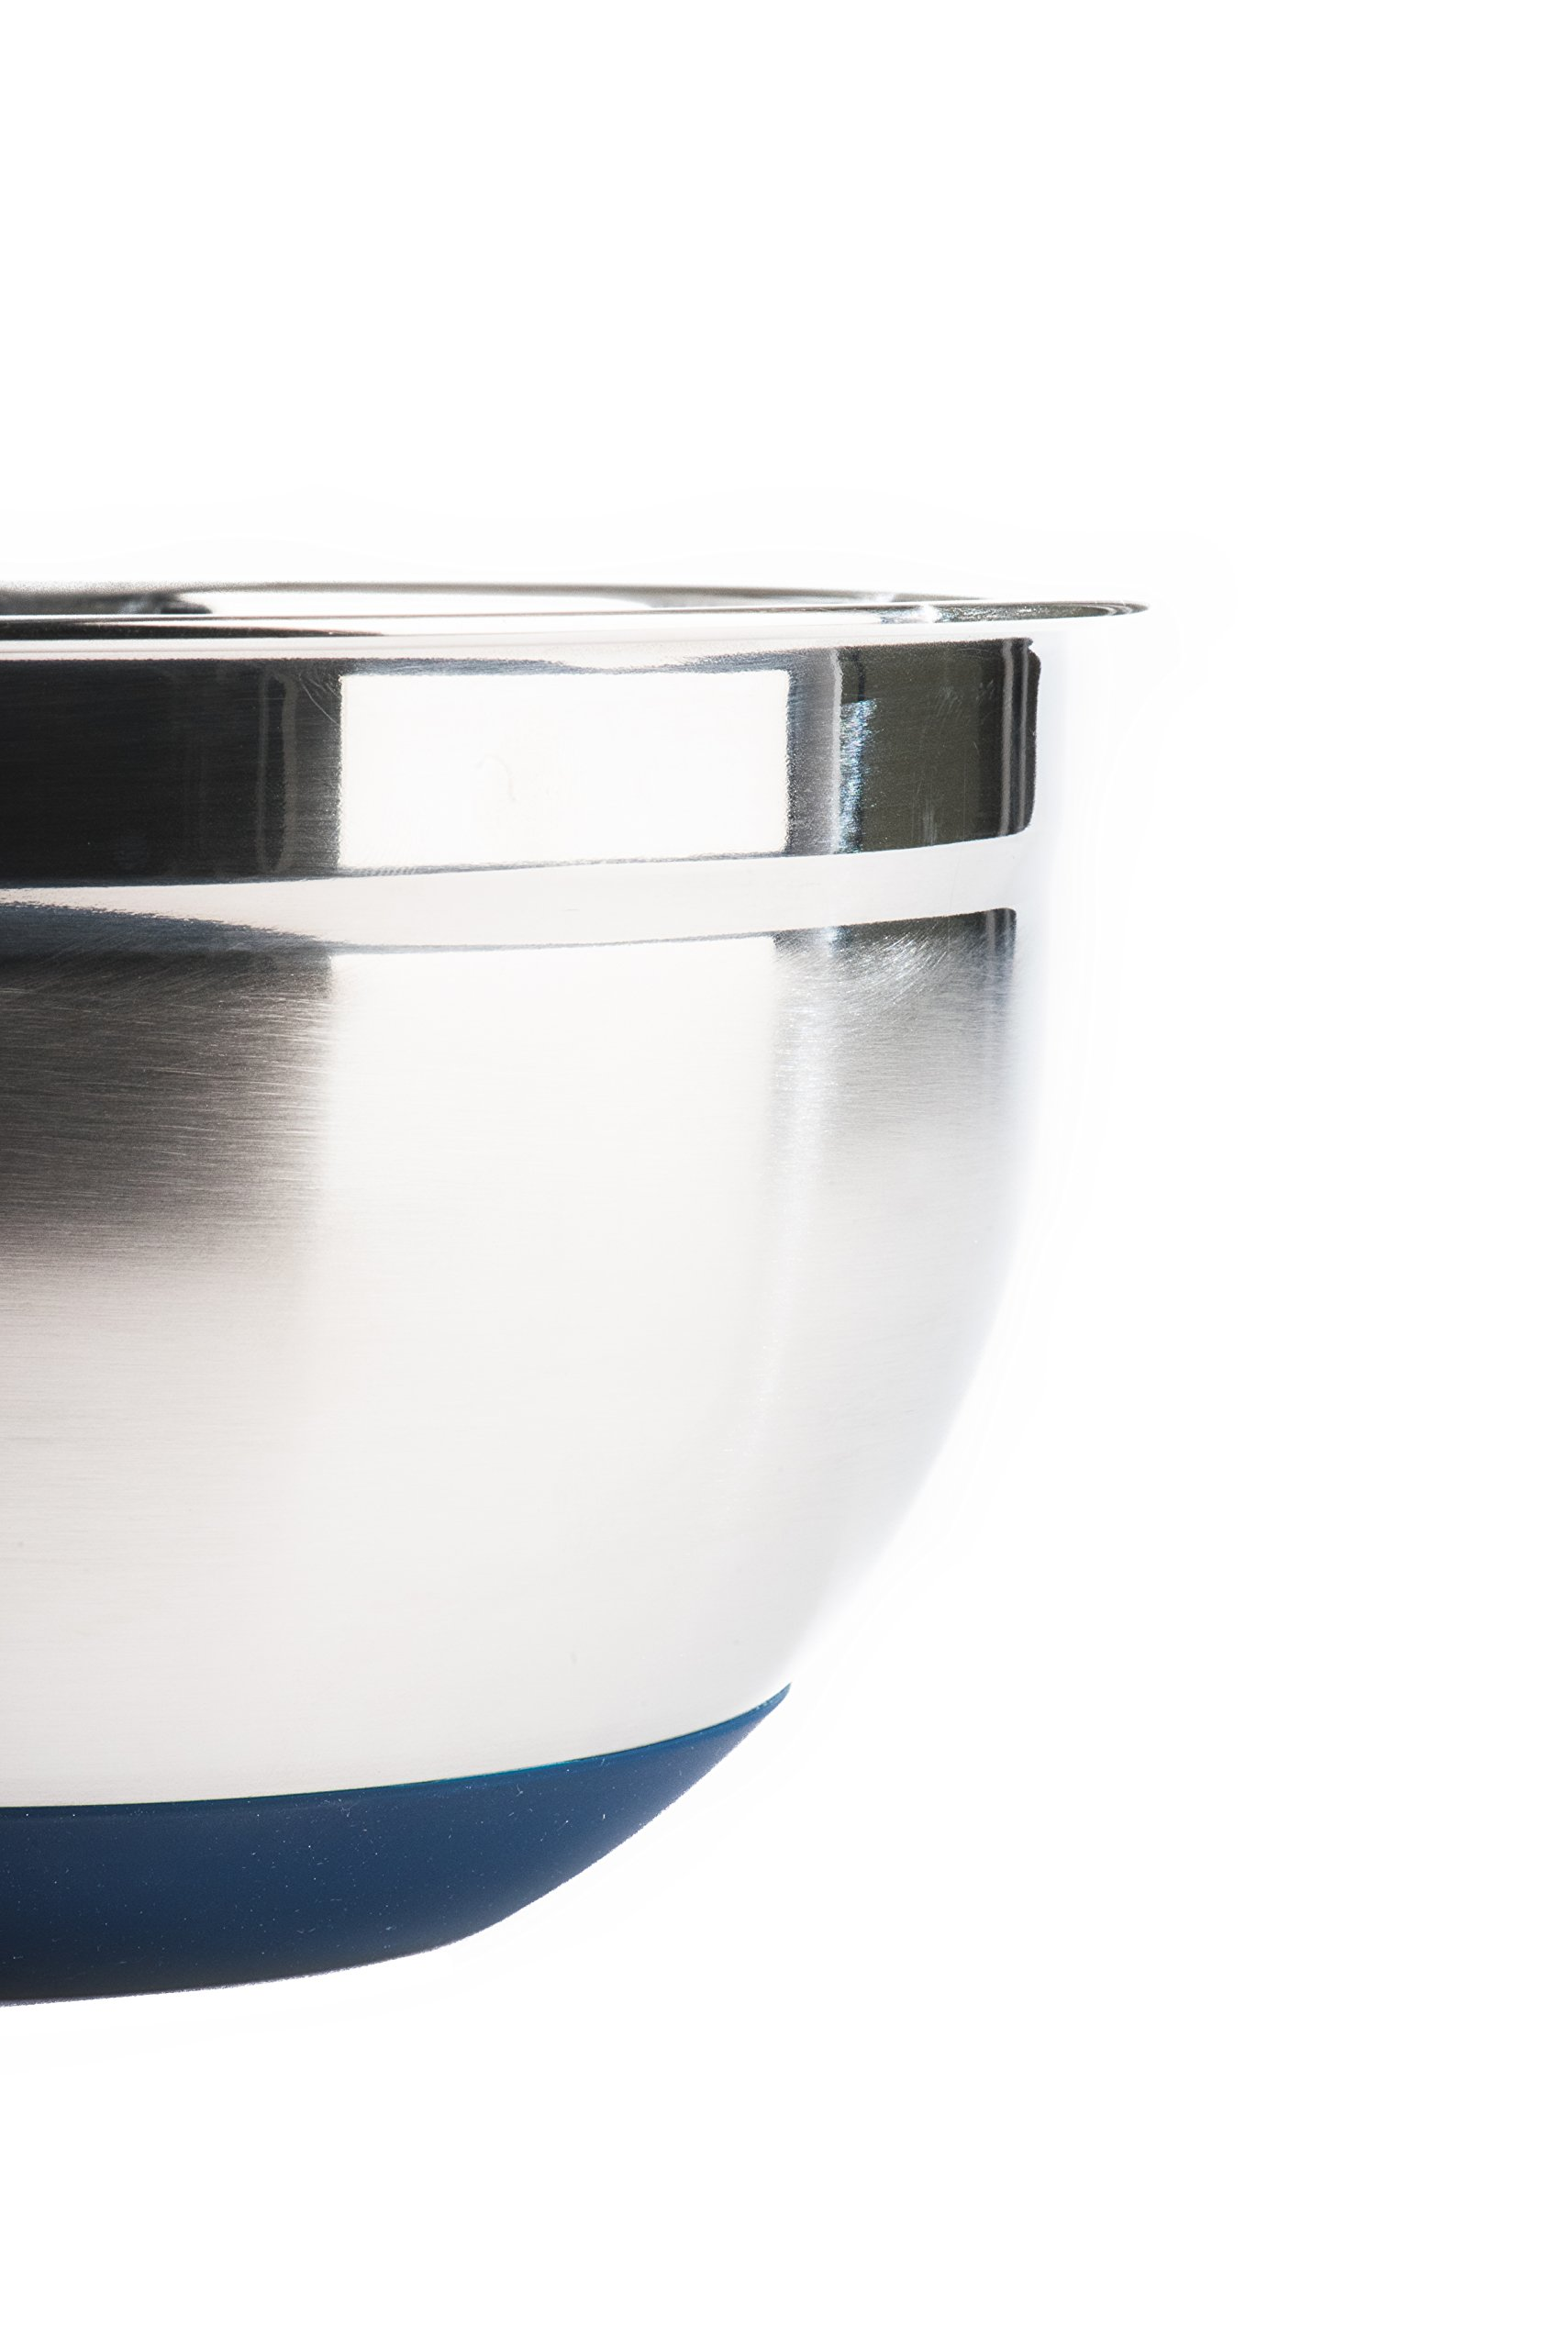 Fitzroy and Fox Non-Slip Stainless Steel Mixing Bowls with Lids, Set of 3, Blue by Fitzroy and Fox (Image #8)